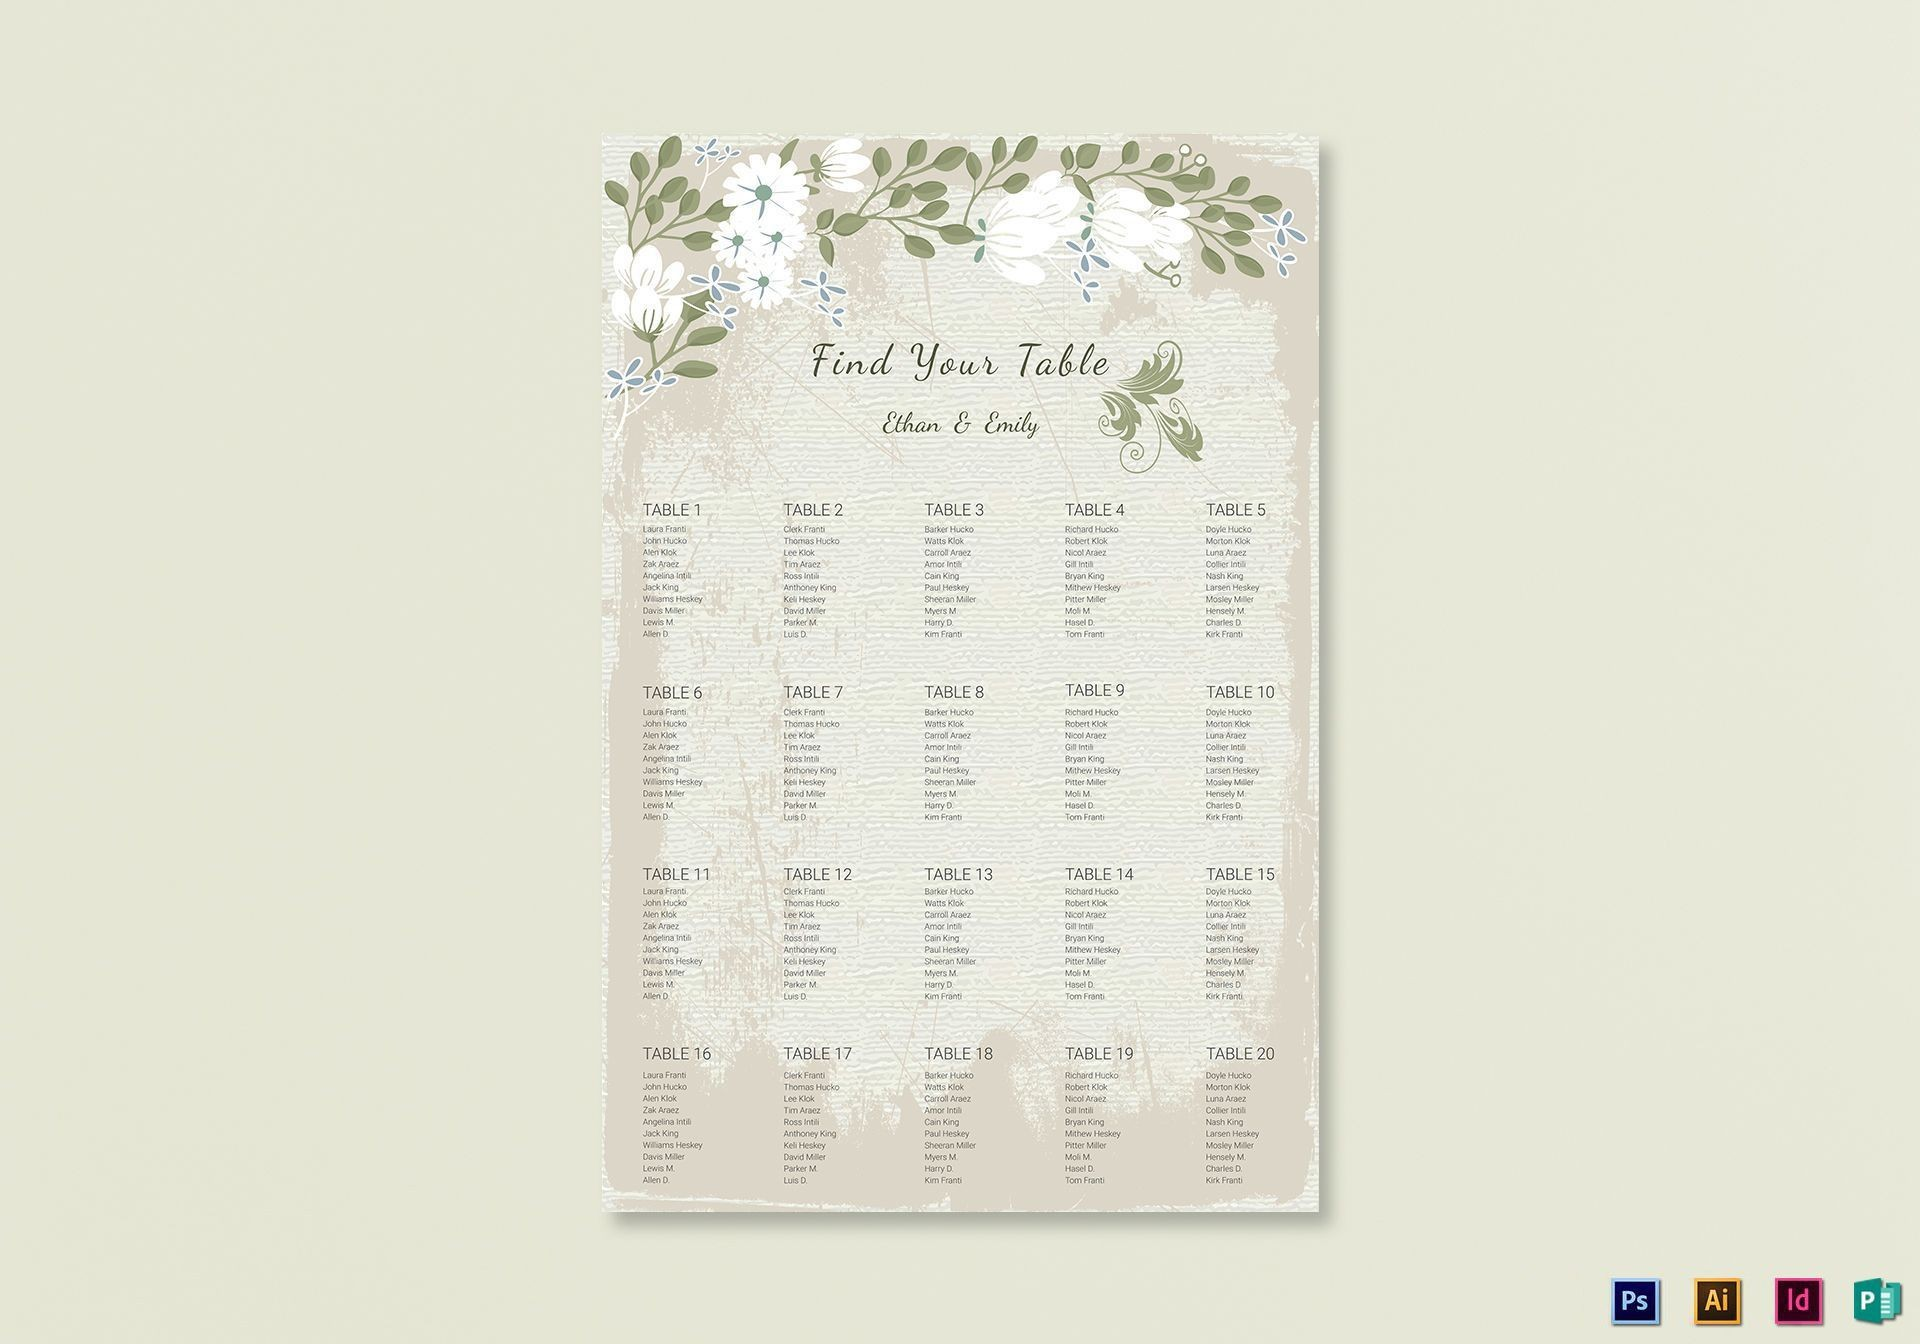 009 Stunning Seating Chart Wedding Template Example  Alphabetical Word Table Plan1920